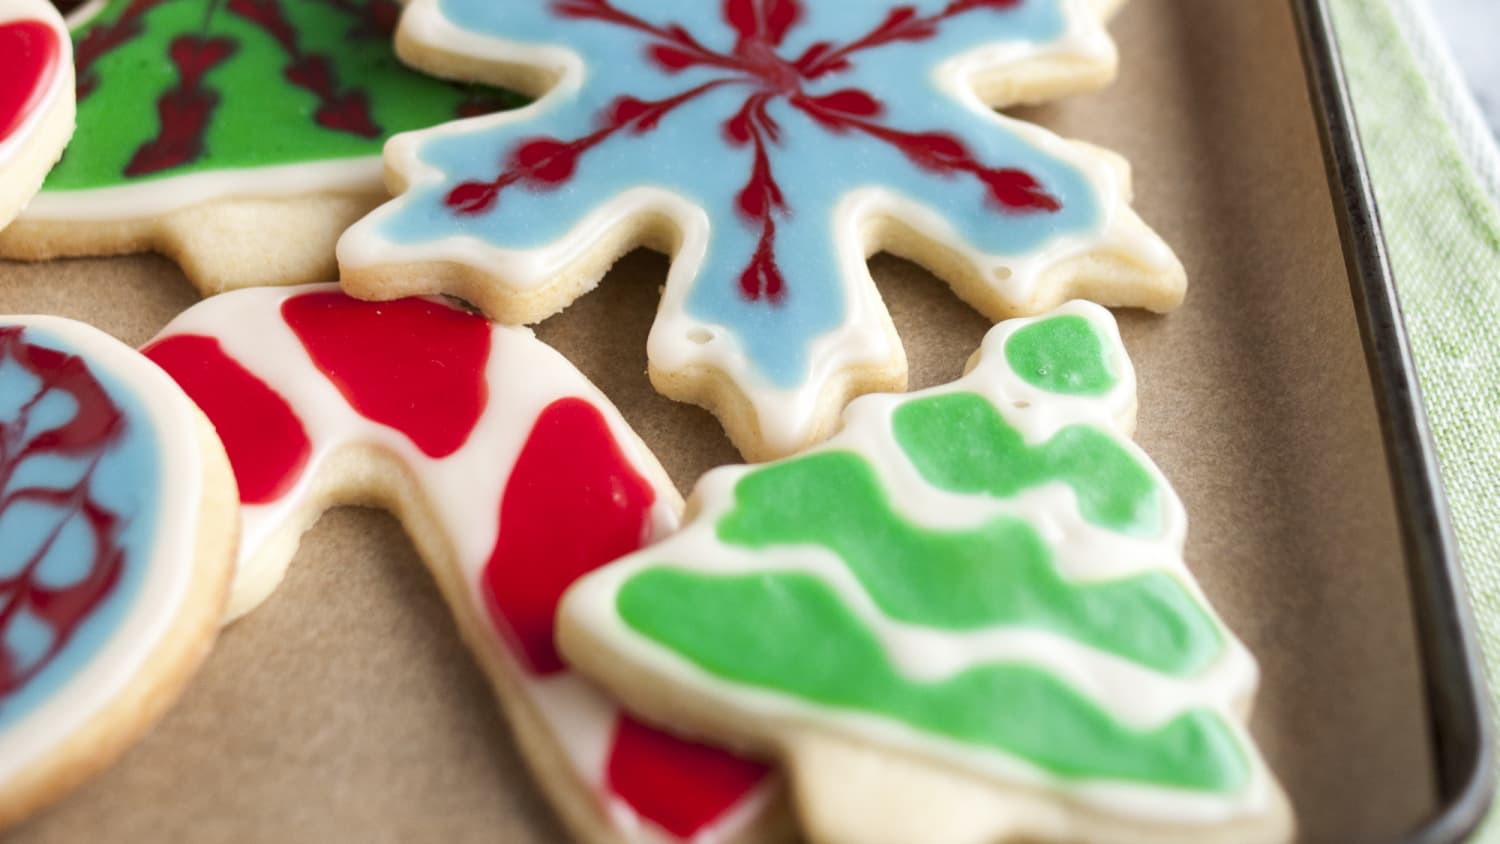 How To Decorate Cookies With Icing